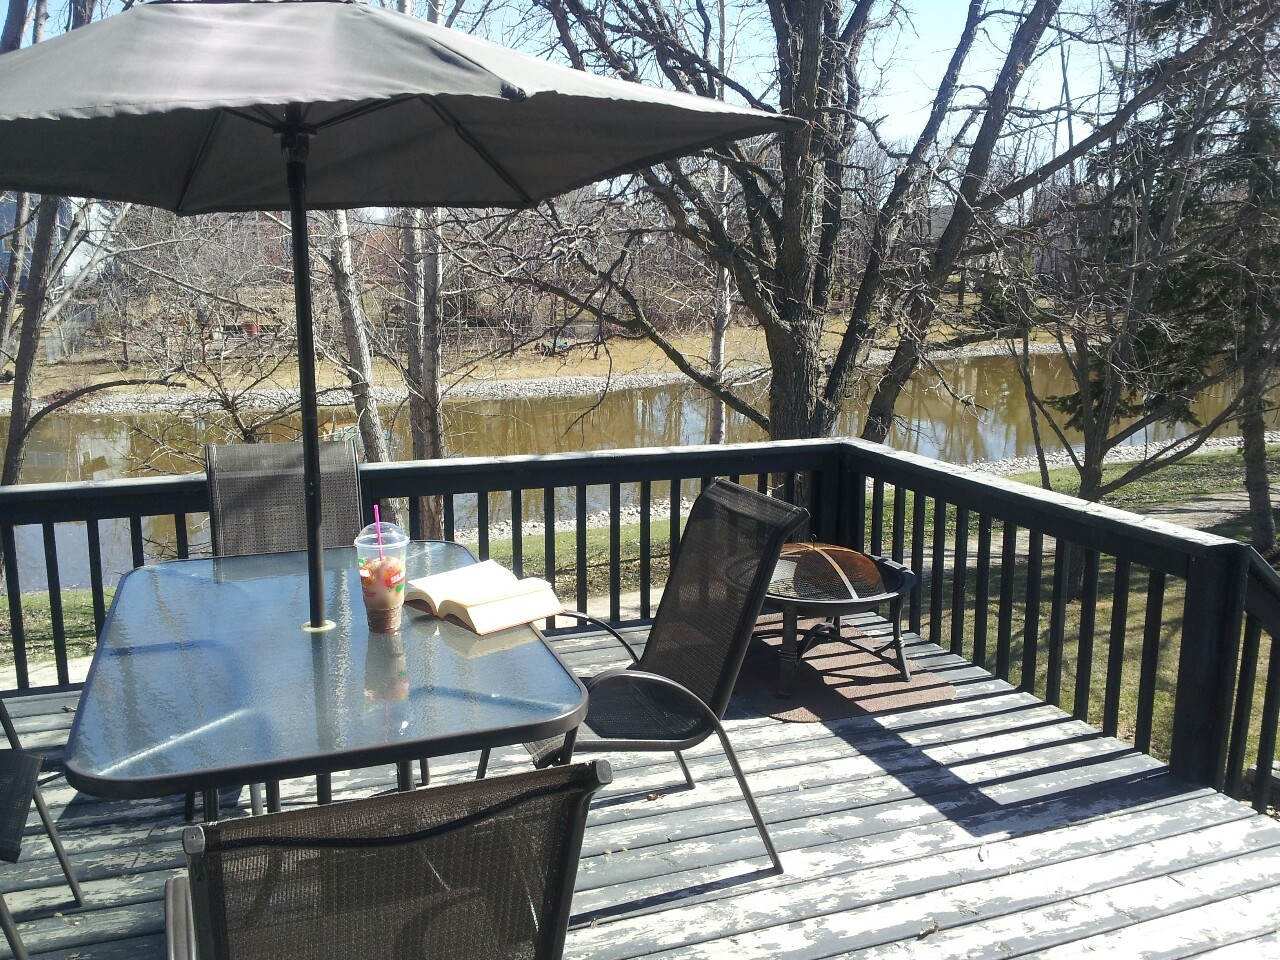 The deck is ready for summer!  In a few weeks we'll have the green shade from nearby trees and we can start having bonfires. Today, however, will involve some much needed suntanning, a delicious Slurpee and Sherlock Holmes!